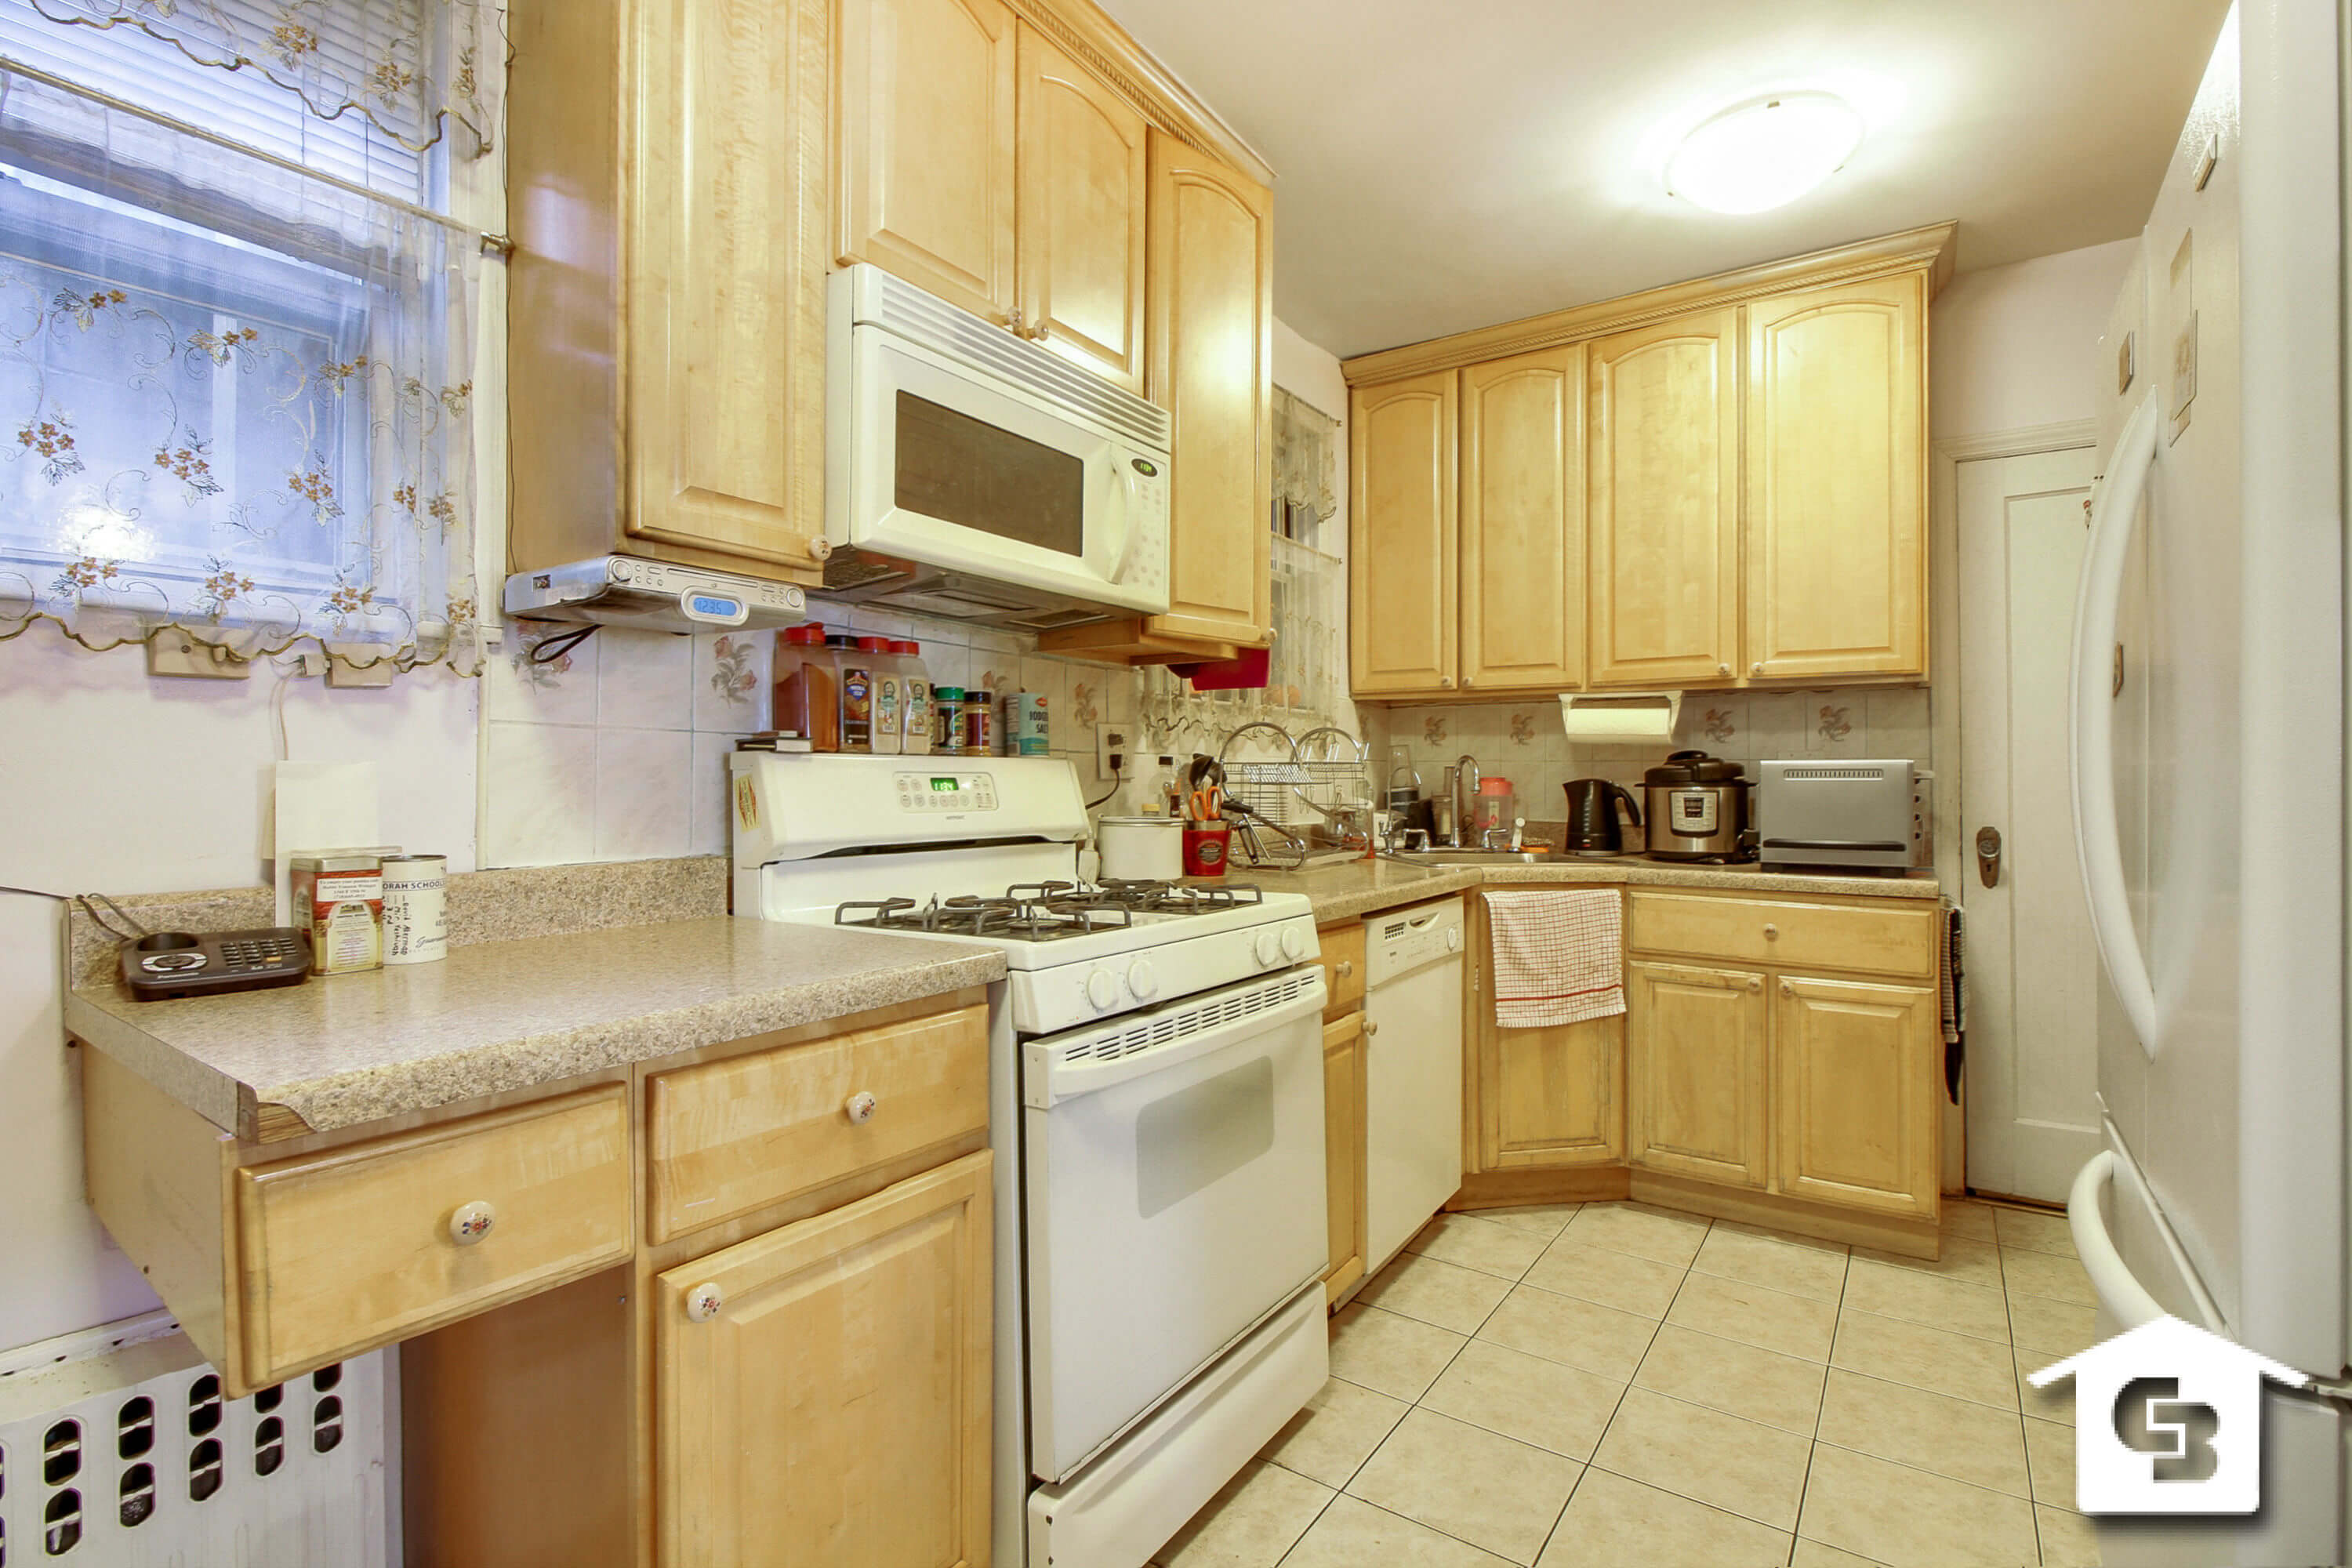 Brooklyn Homes for Sale in West Midwood, Midwood, Wingate